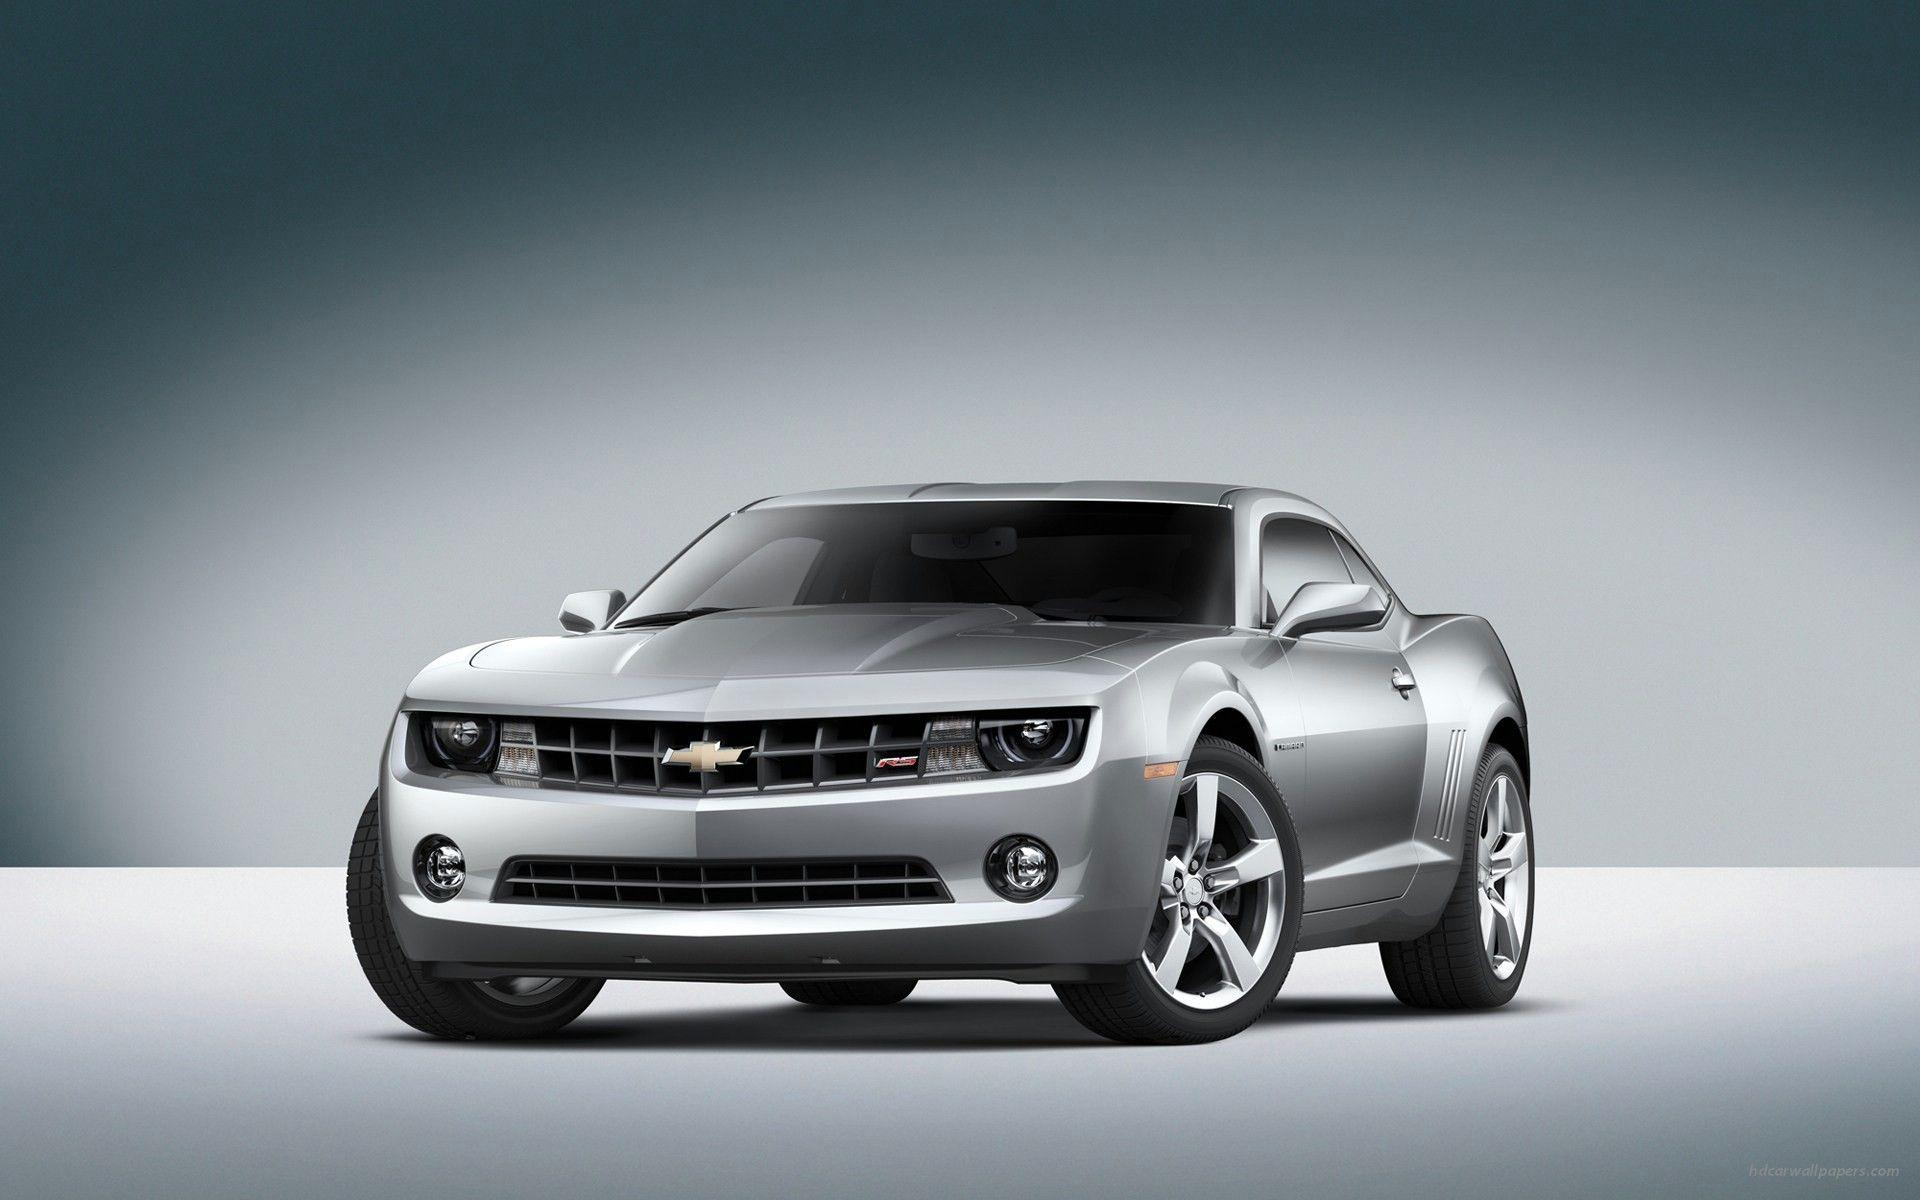 2010 Chevrolet Camaro RS 8 Wallpapers